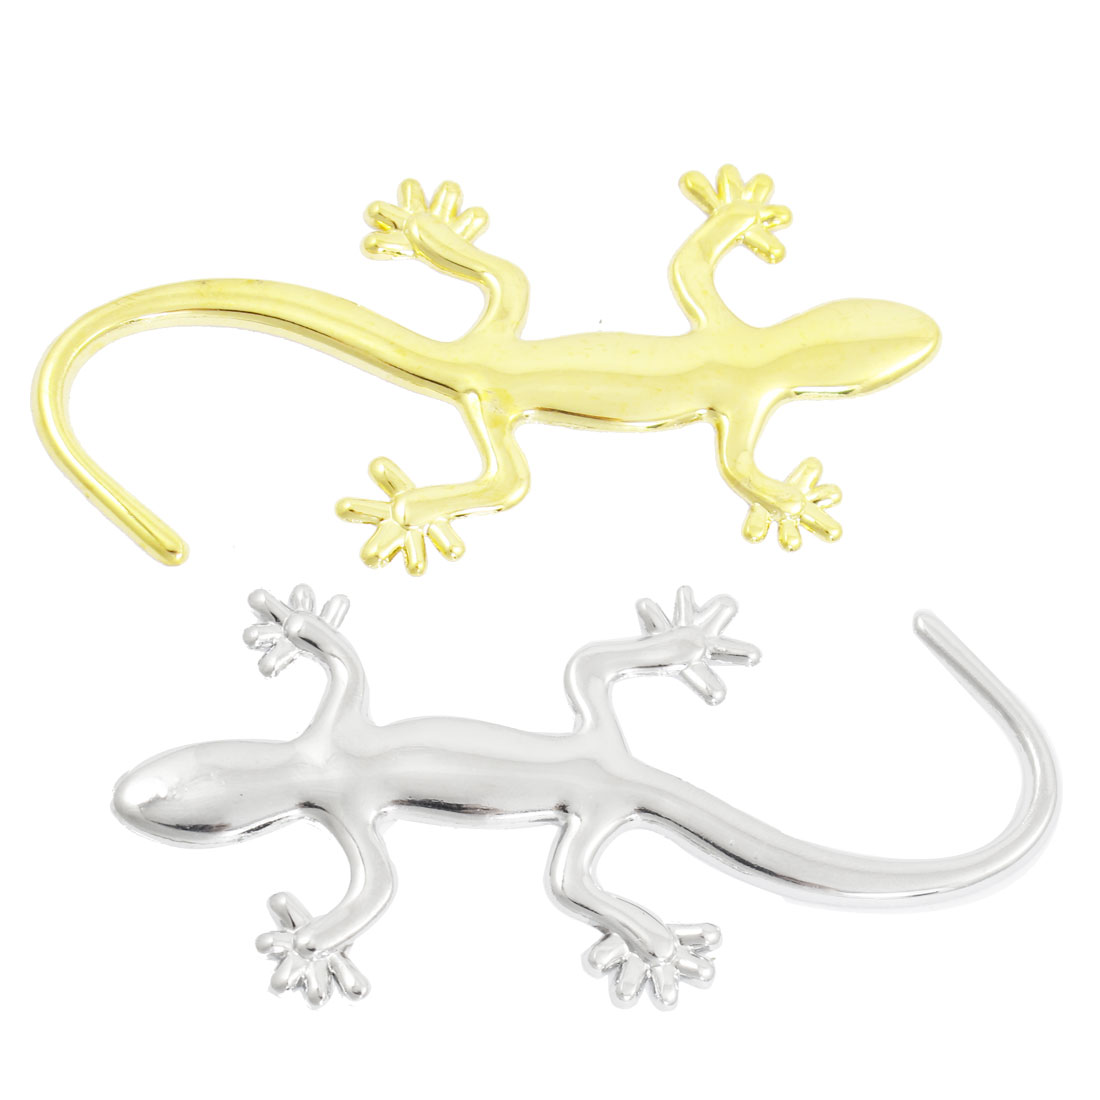 2 Pcs Gekko Shaped Silver Gold Tone 3D Car Stickers